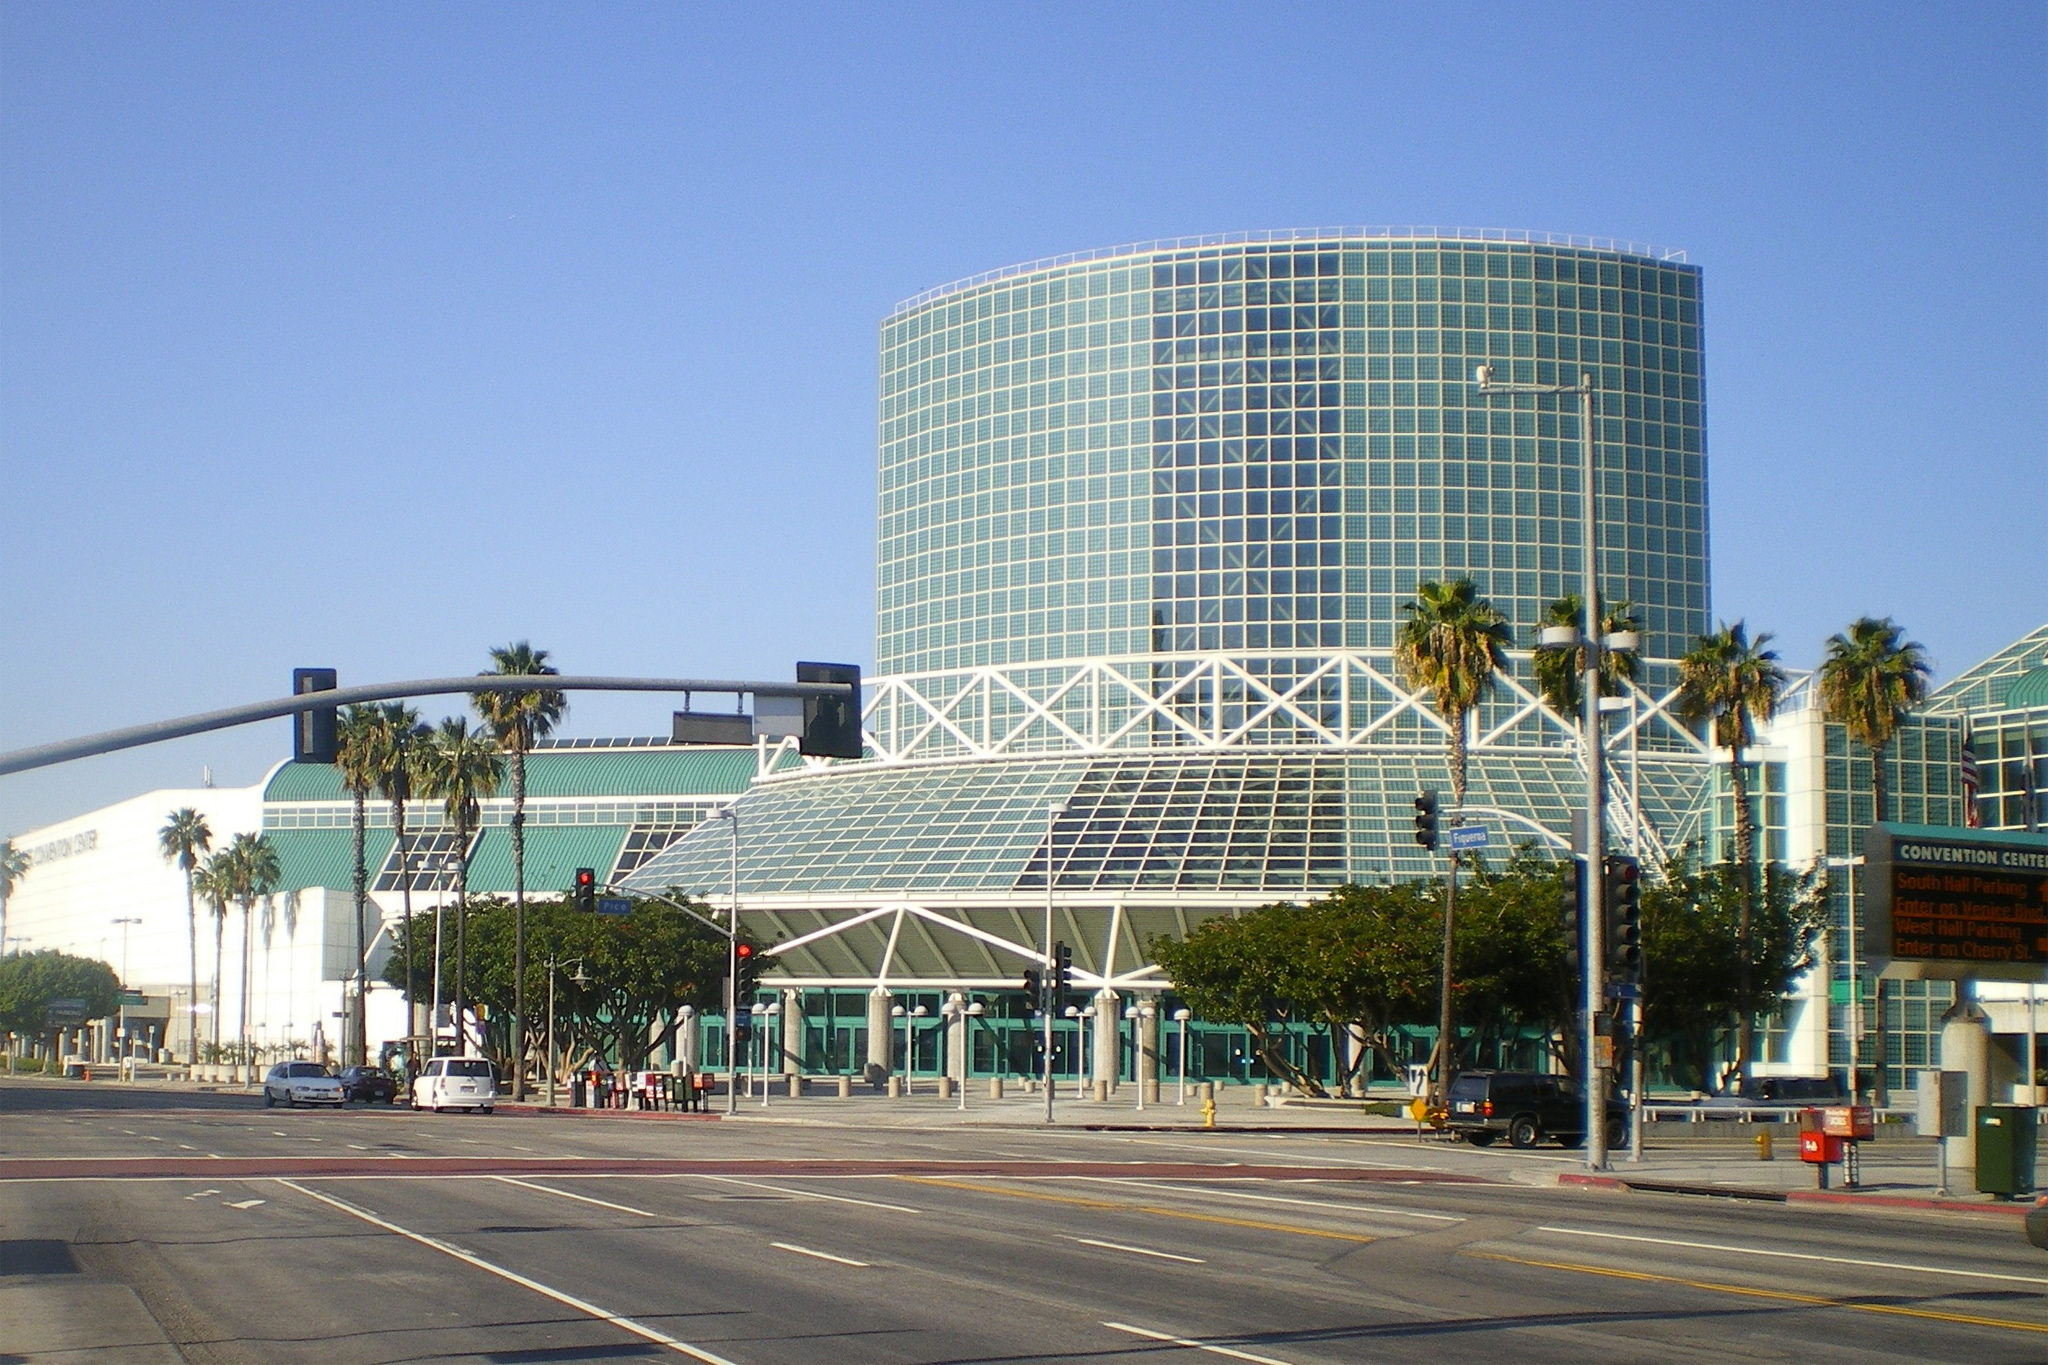 Los Angeles Convention Center.